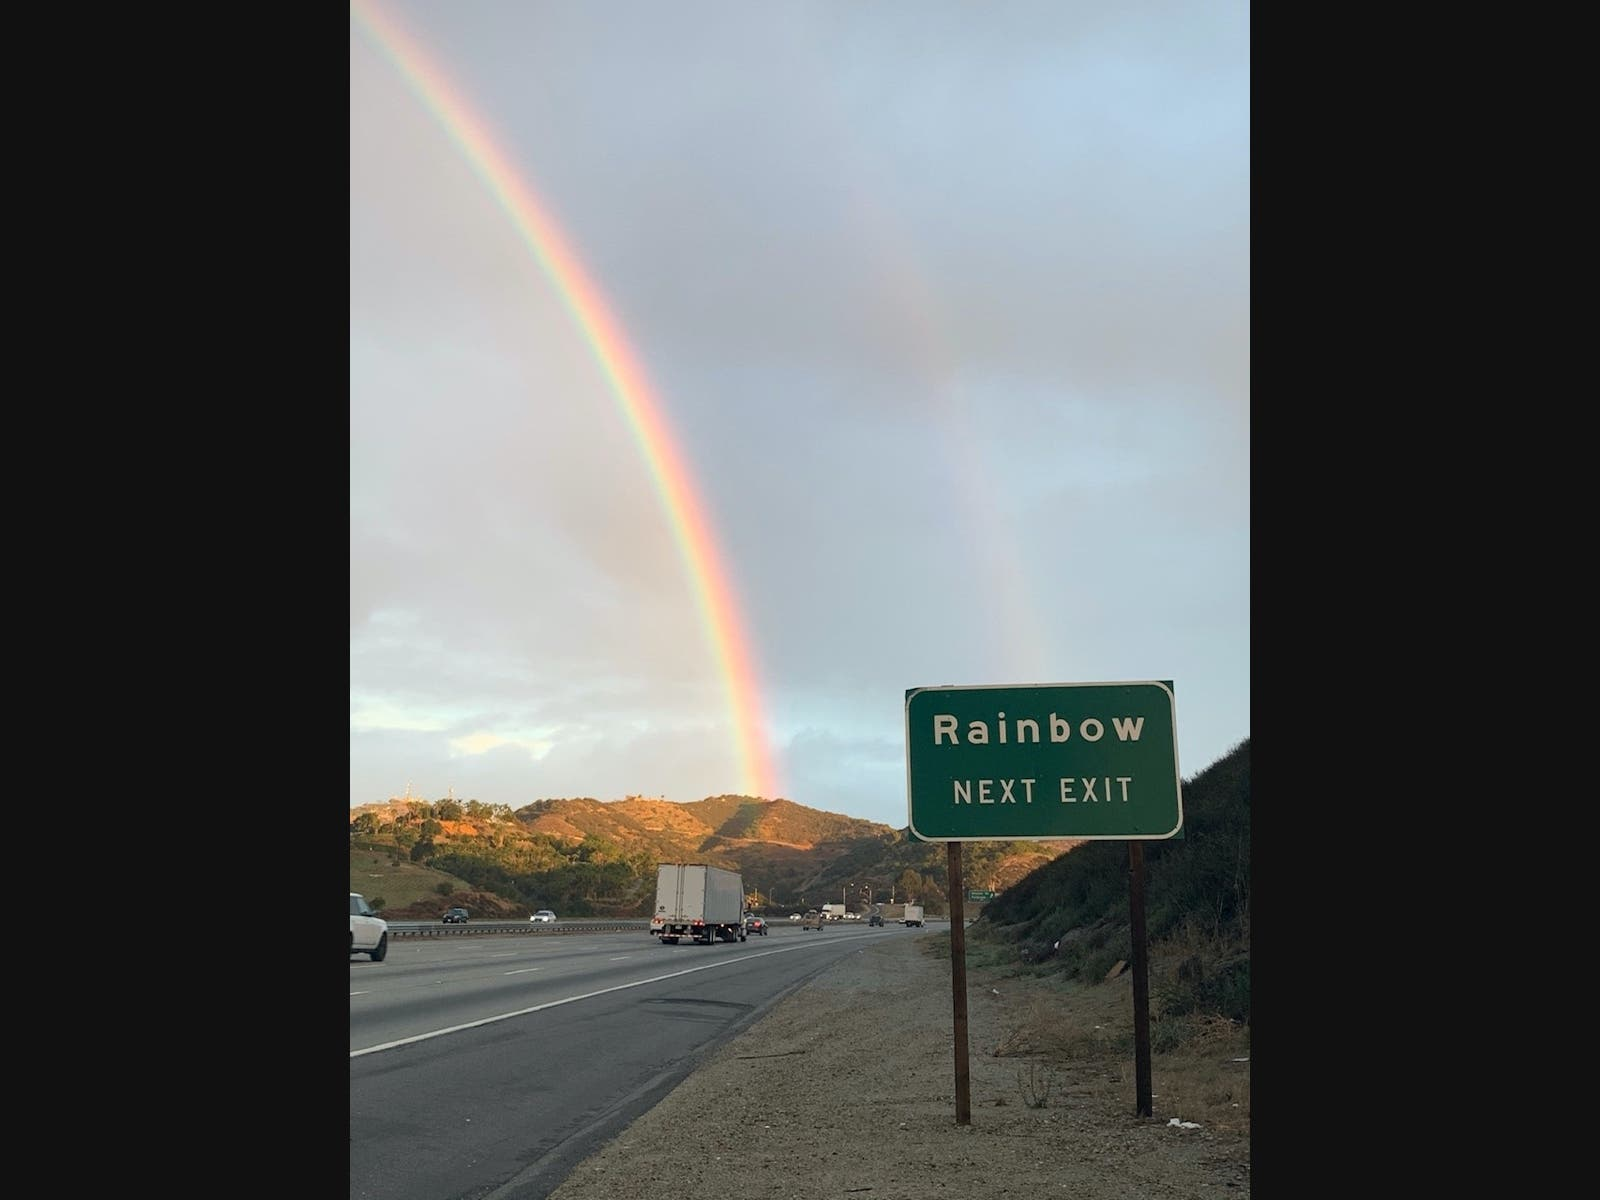 Serendipitous Weather In Rainbow: Photo Of The Day